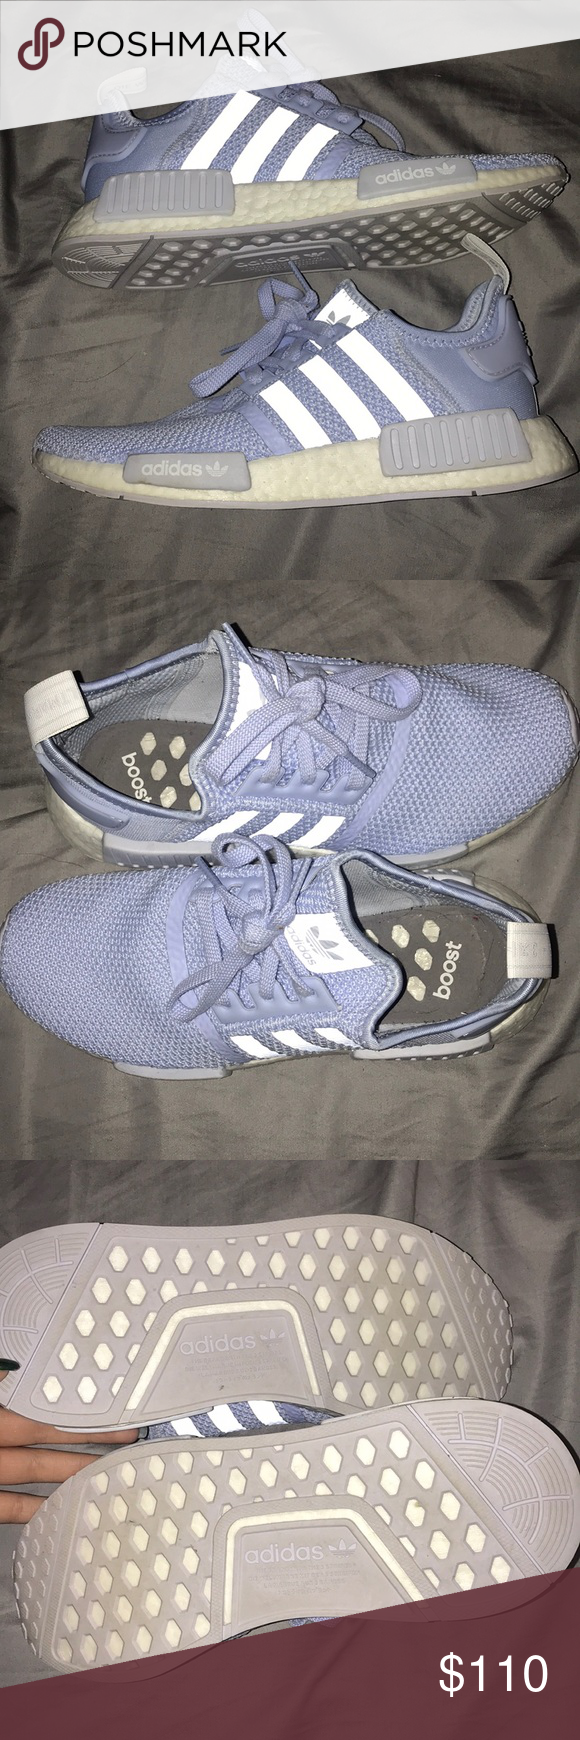 newest 180ae b3964 Adidas NMD Aero Blue Cloud White Adidas NMD. Worn twice ...